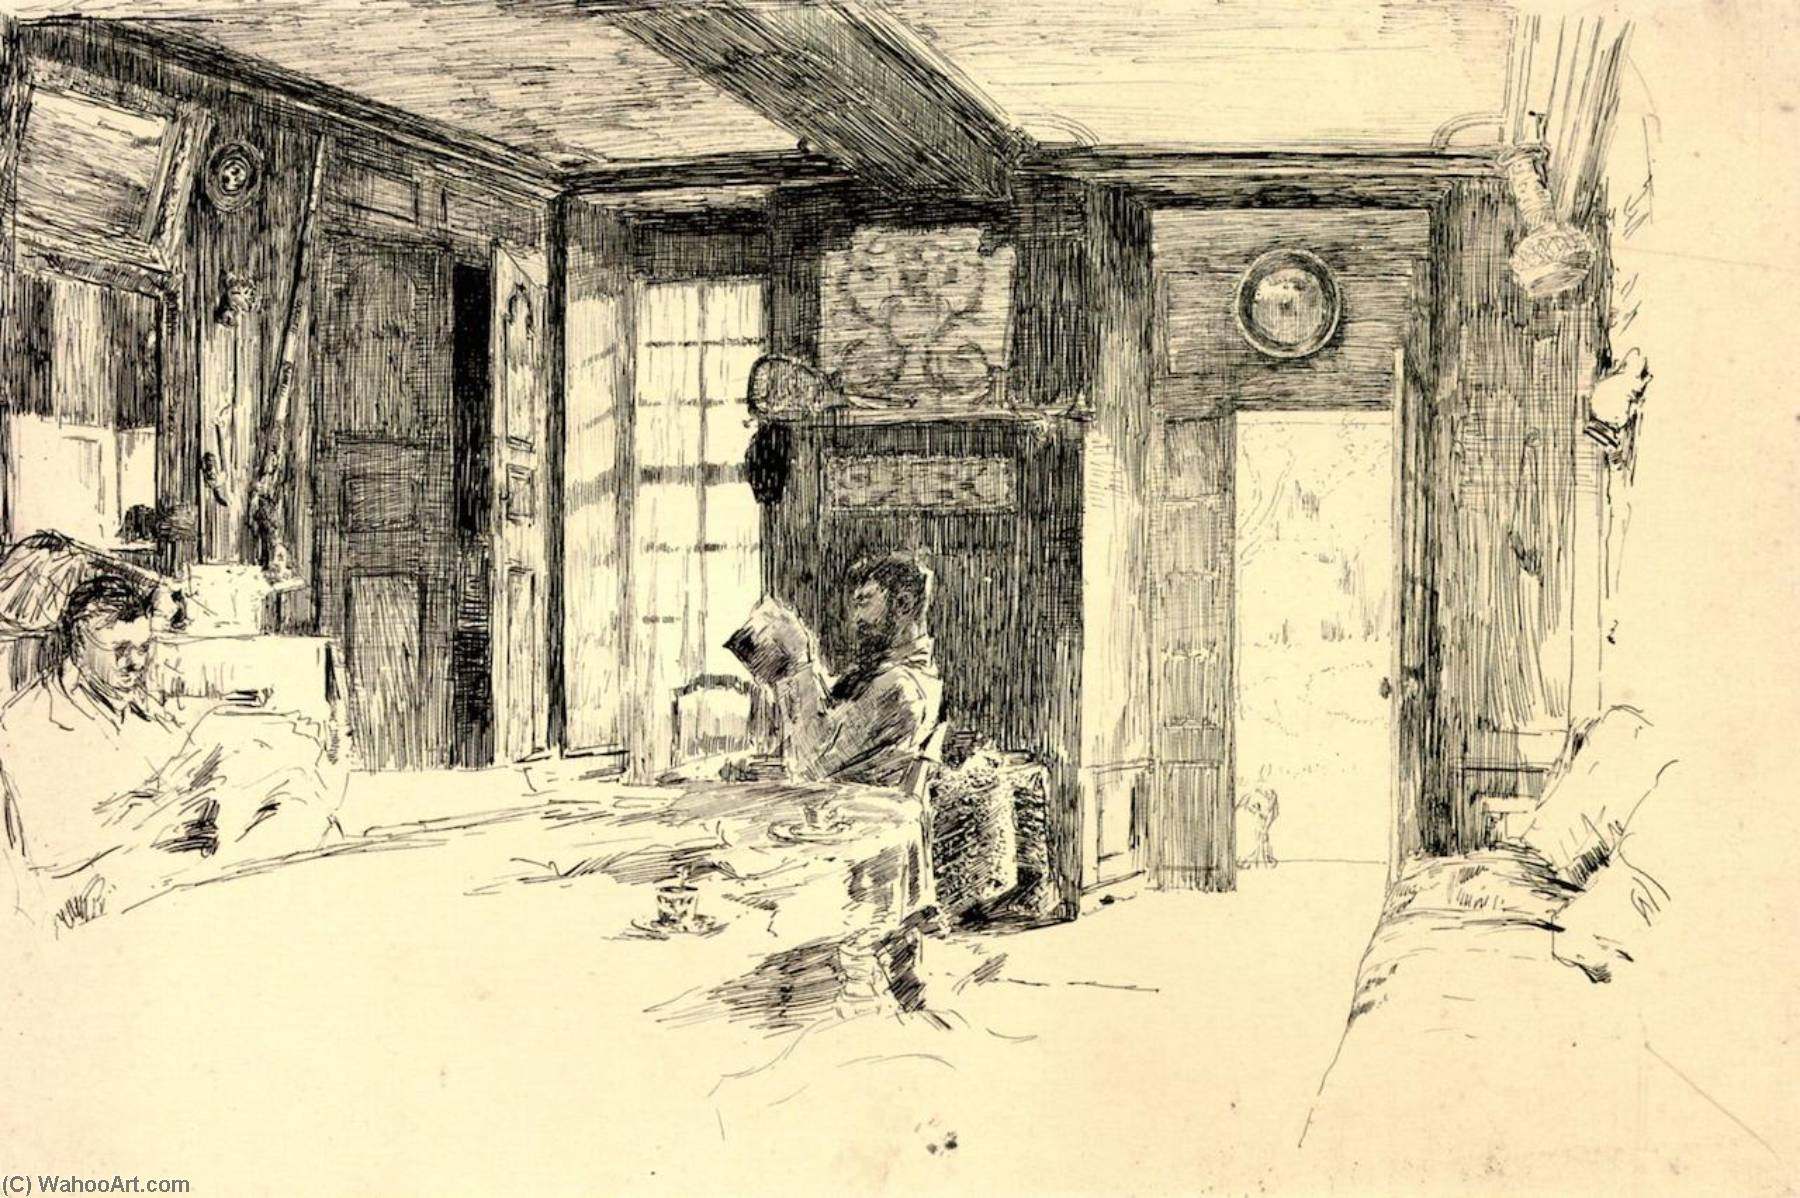 Interior de la Granja , Giverny, dibujo de William Blair Bruce (1859-1906, Canada)